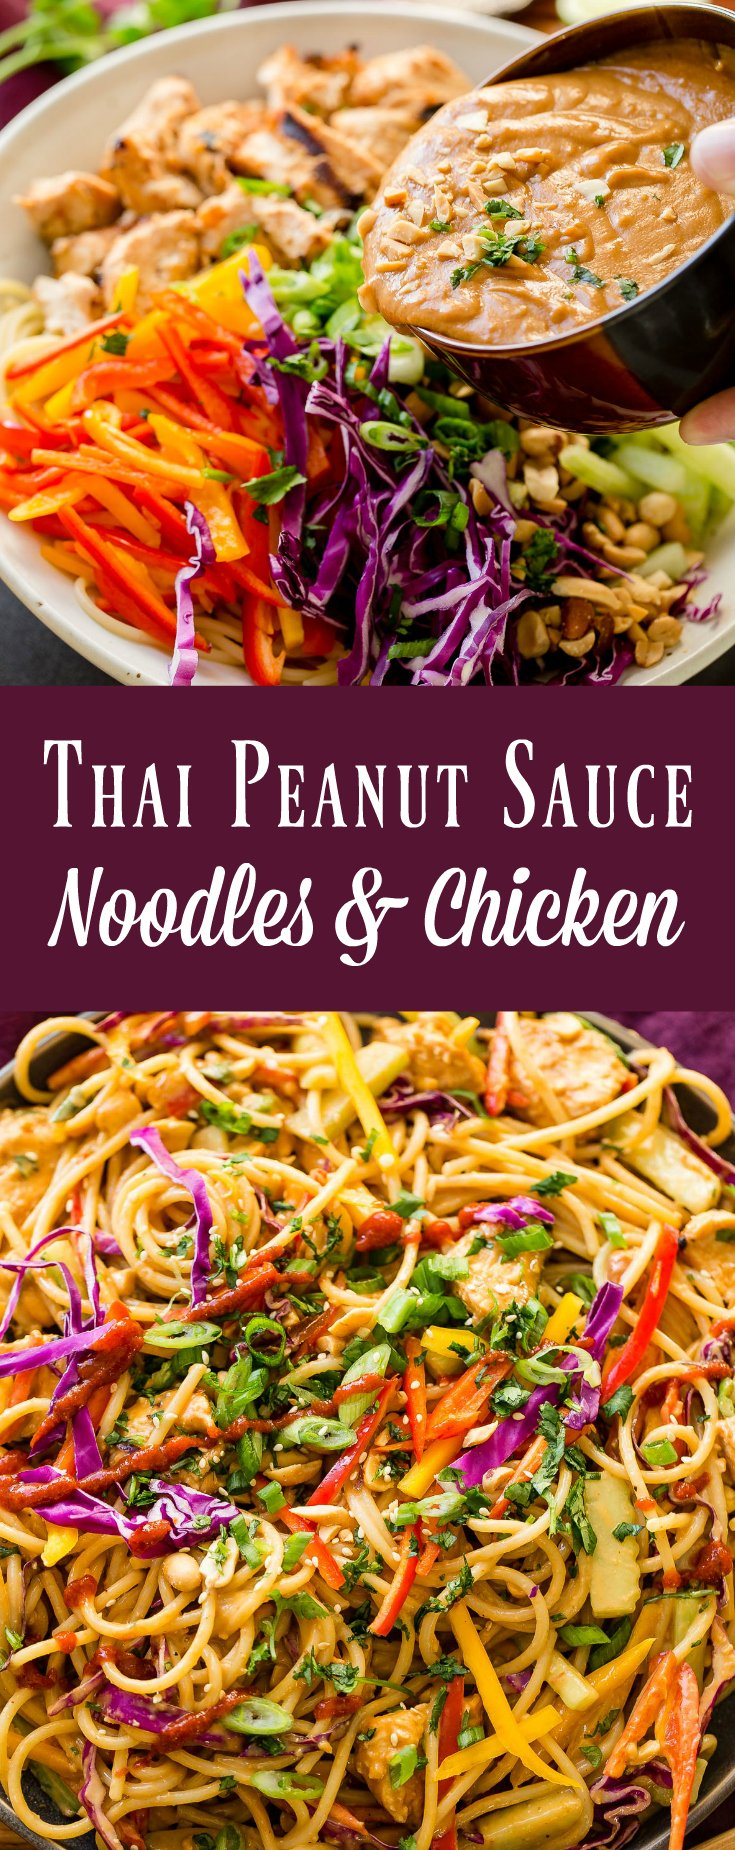 Don't head out to your local favorite Thai restaurant for Thai Peanut Sauce Noodles and Chicken. You can make the best Thai peanut sauce at home!